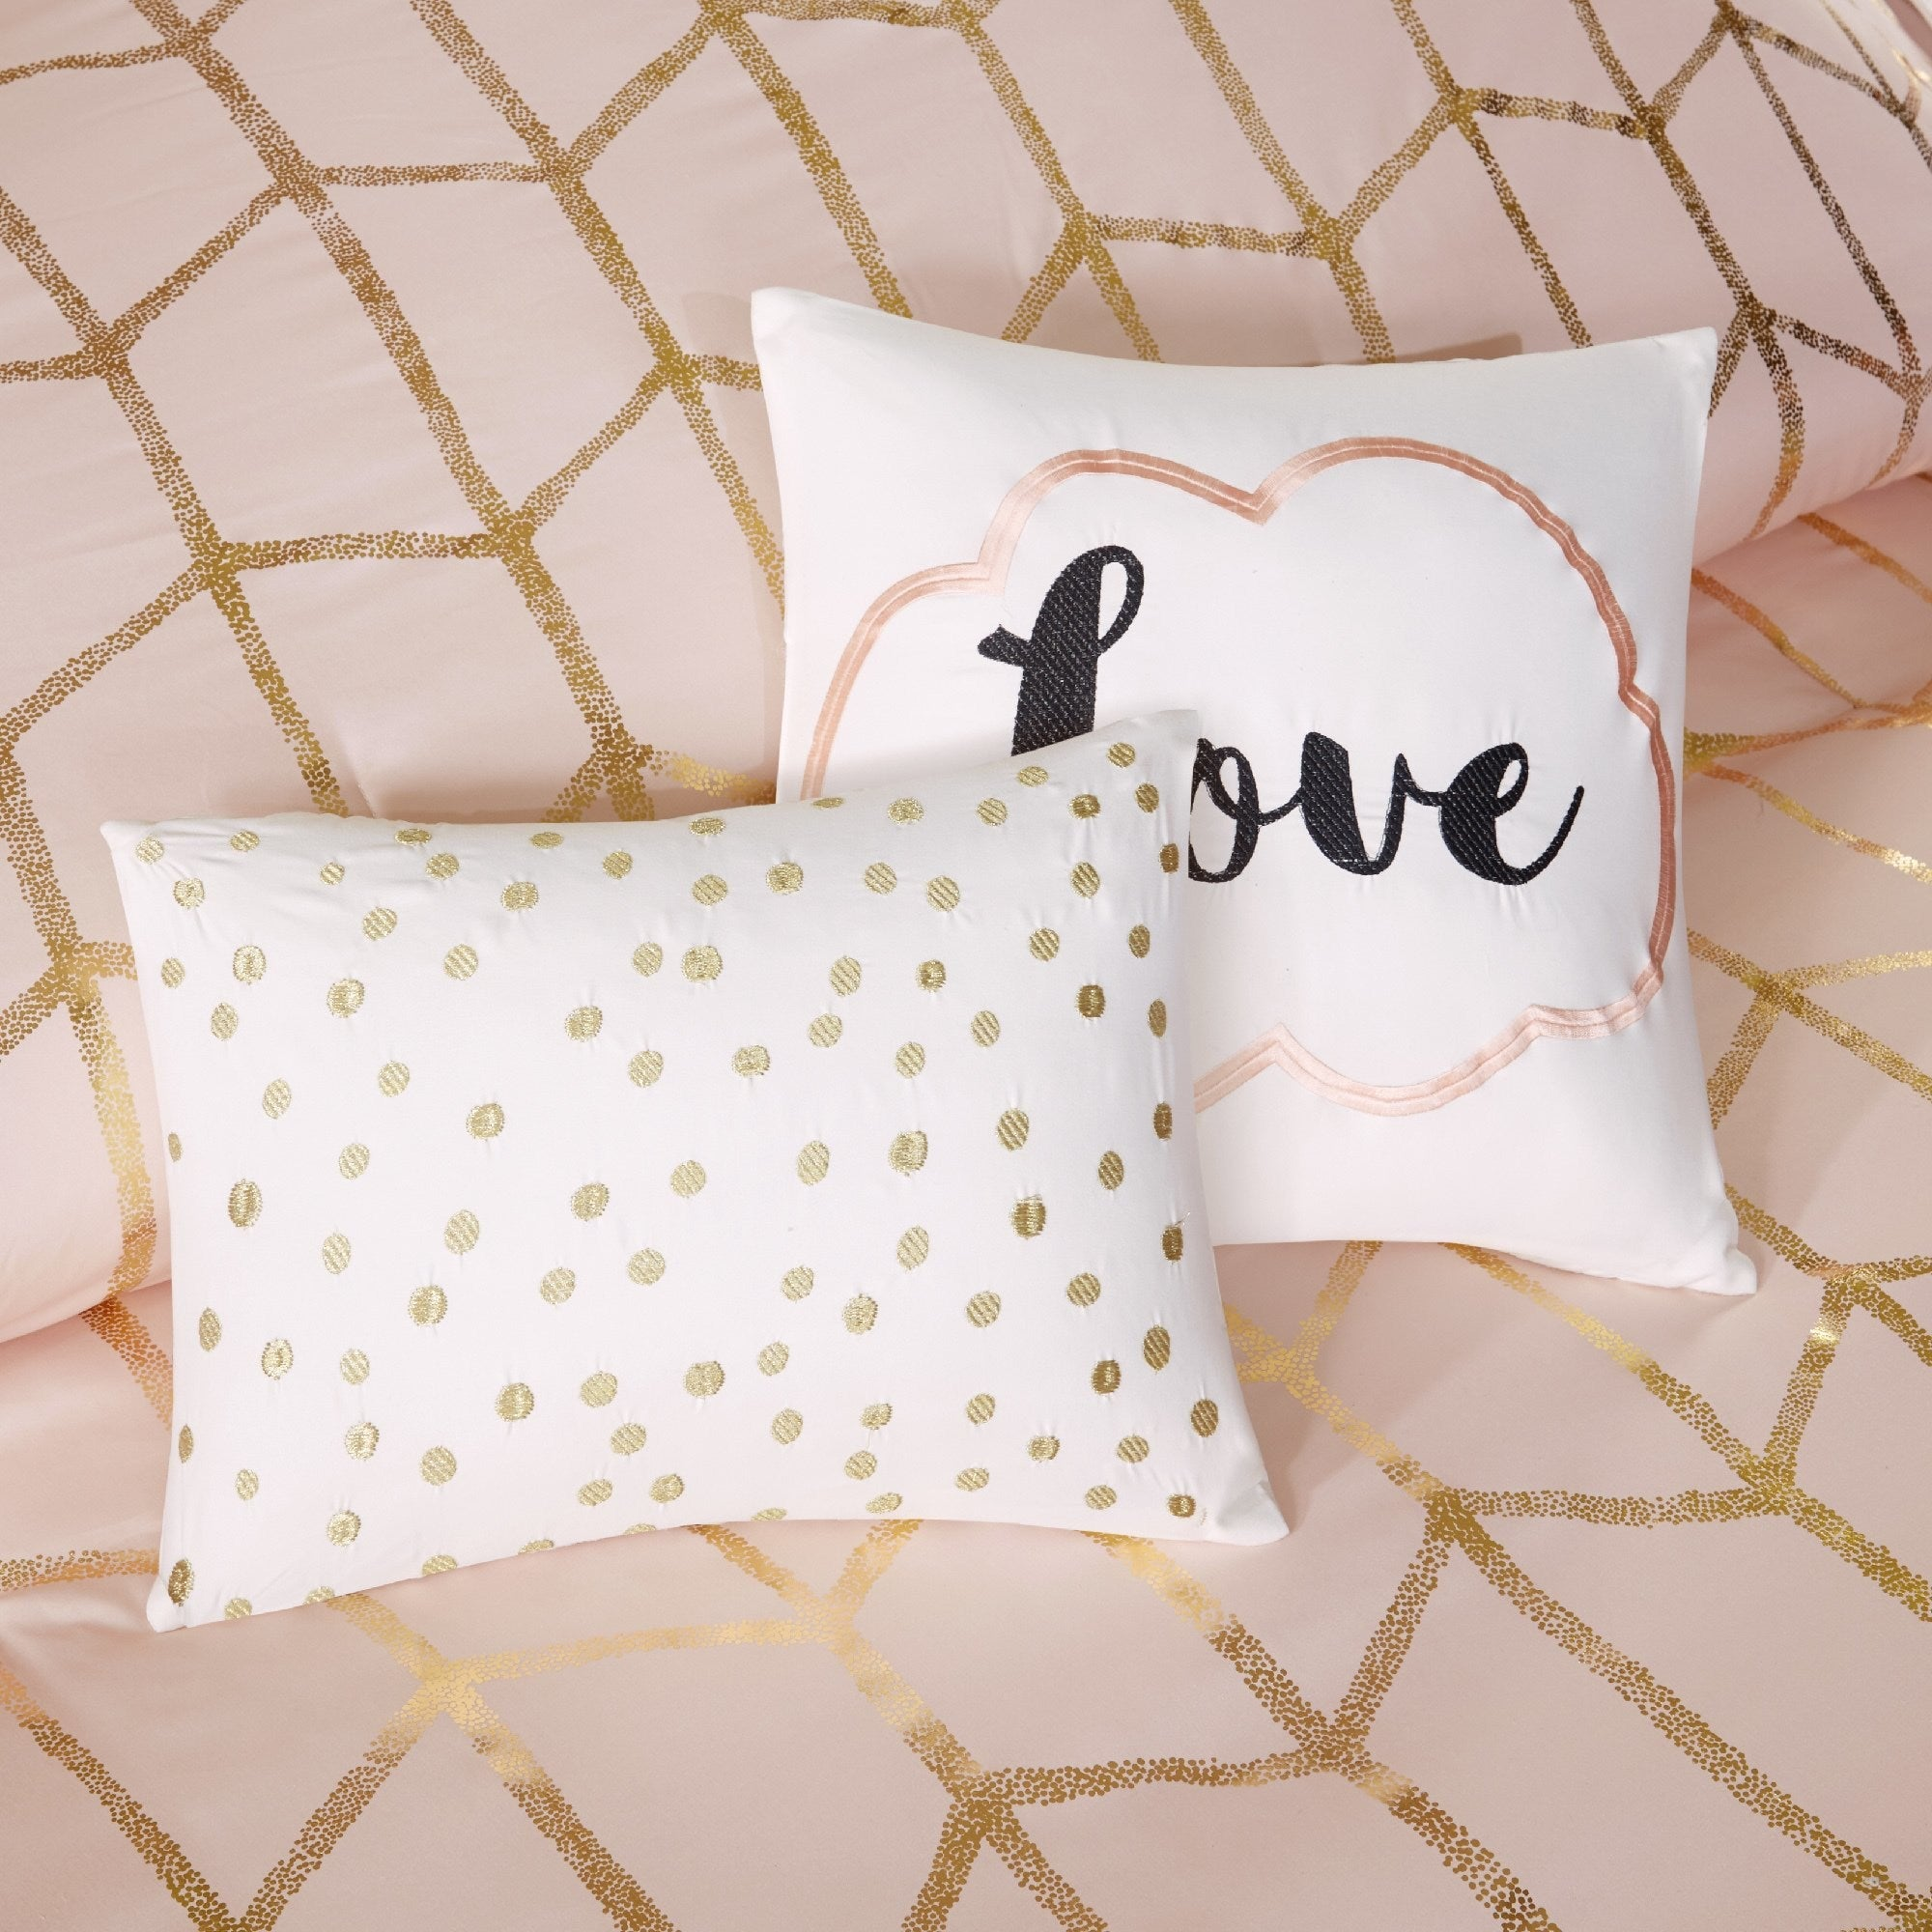 Geometric Shape Duvet Cover Set Modern Chic Polkadot Comb Themed Bedding Contemporary Polkadot Trellis Line Scale Pattern Polyester